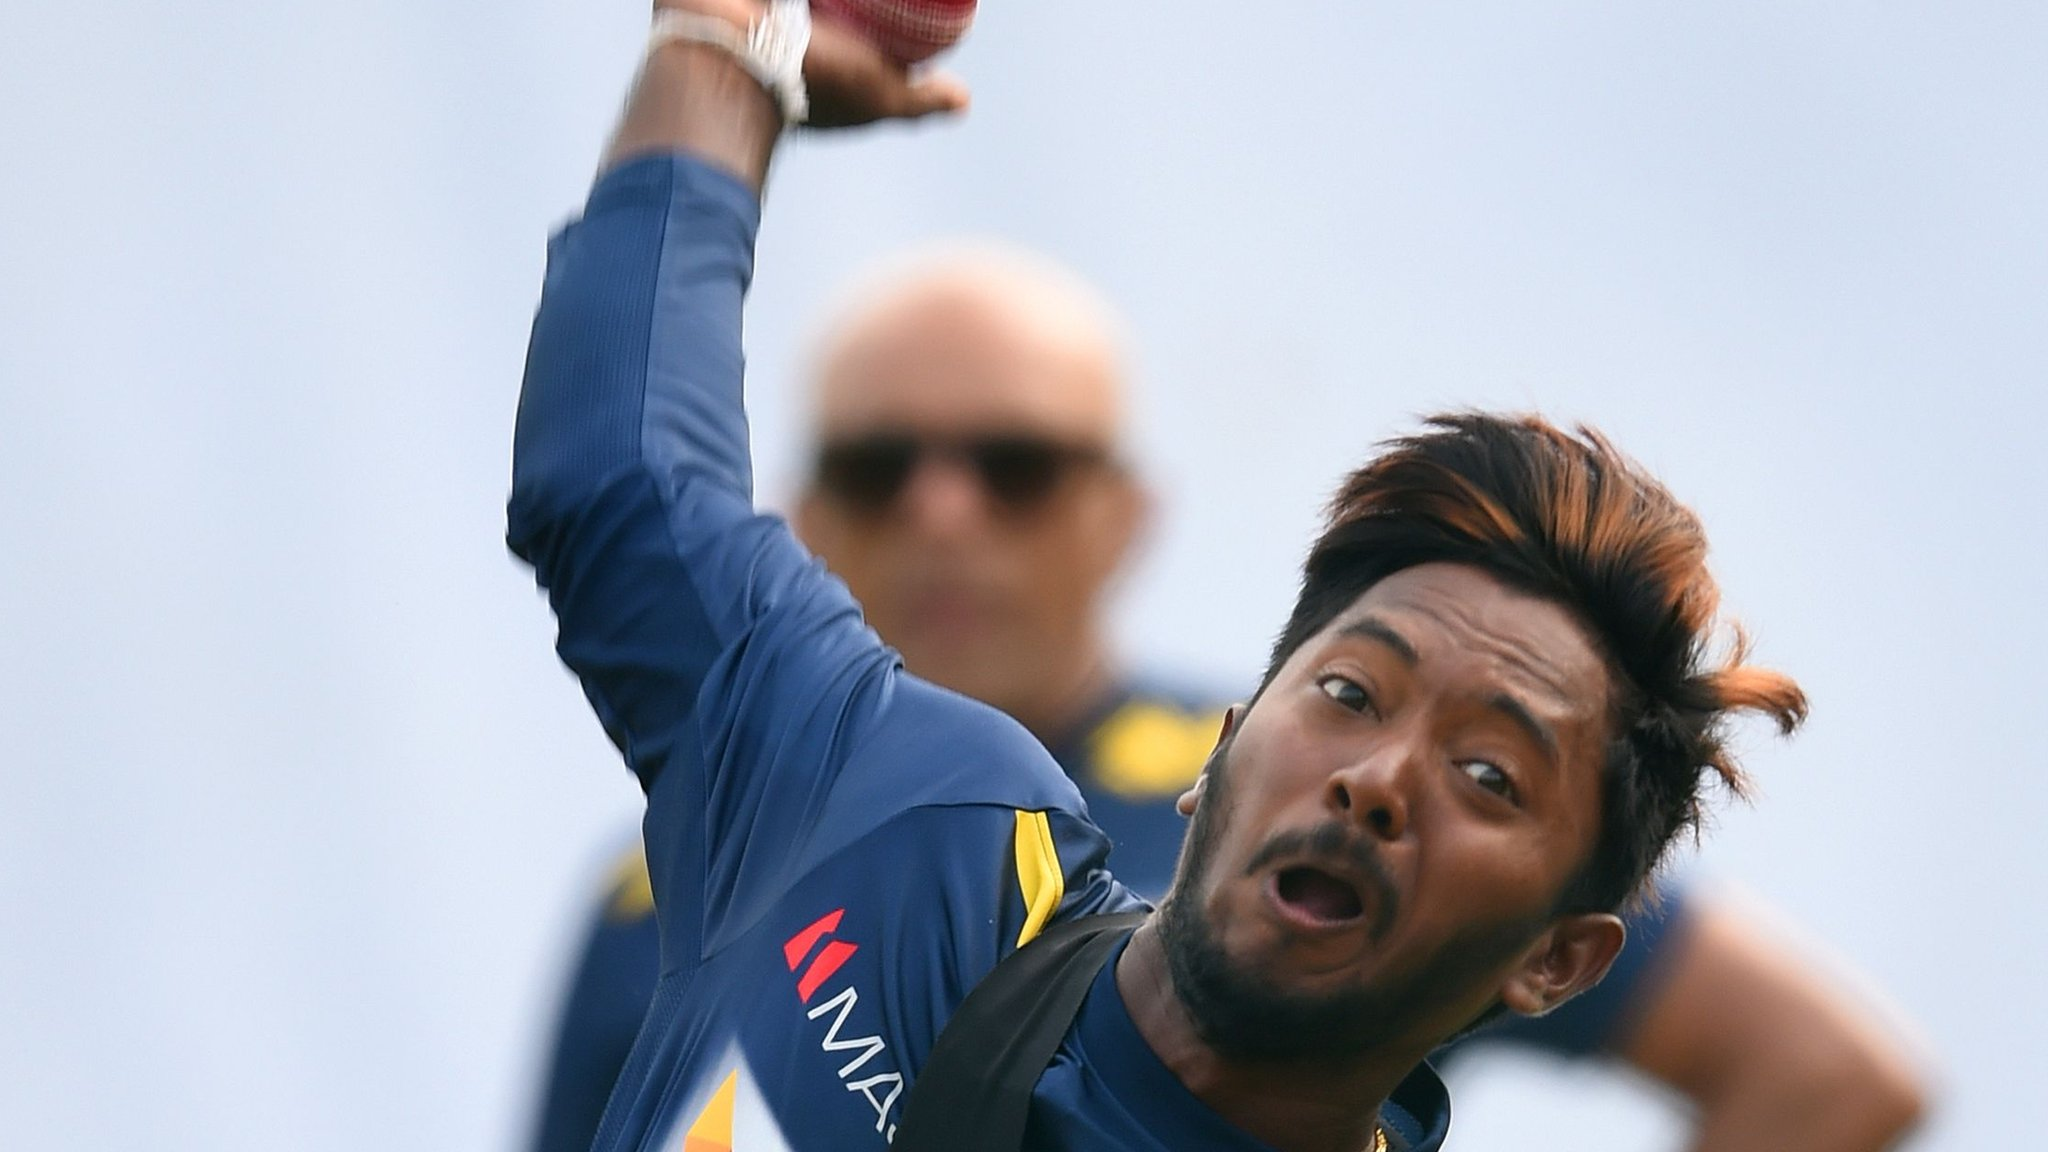 Sri Lanka spinner Dananjaya suspended for illegal action